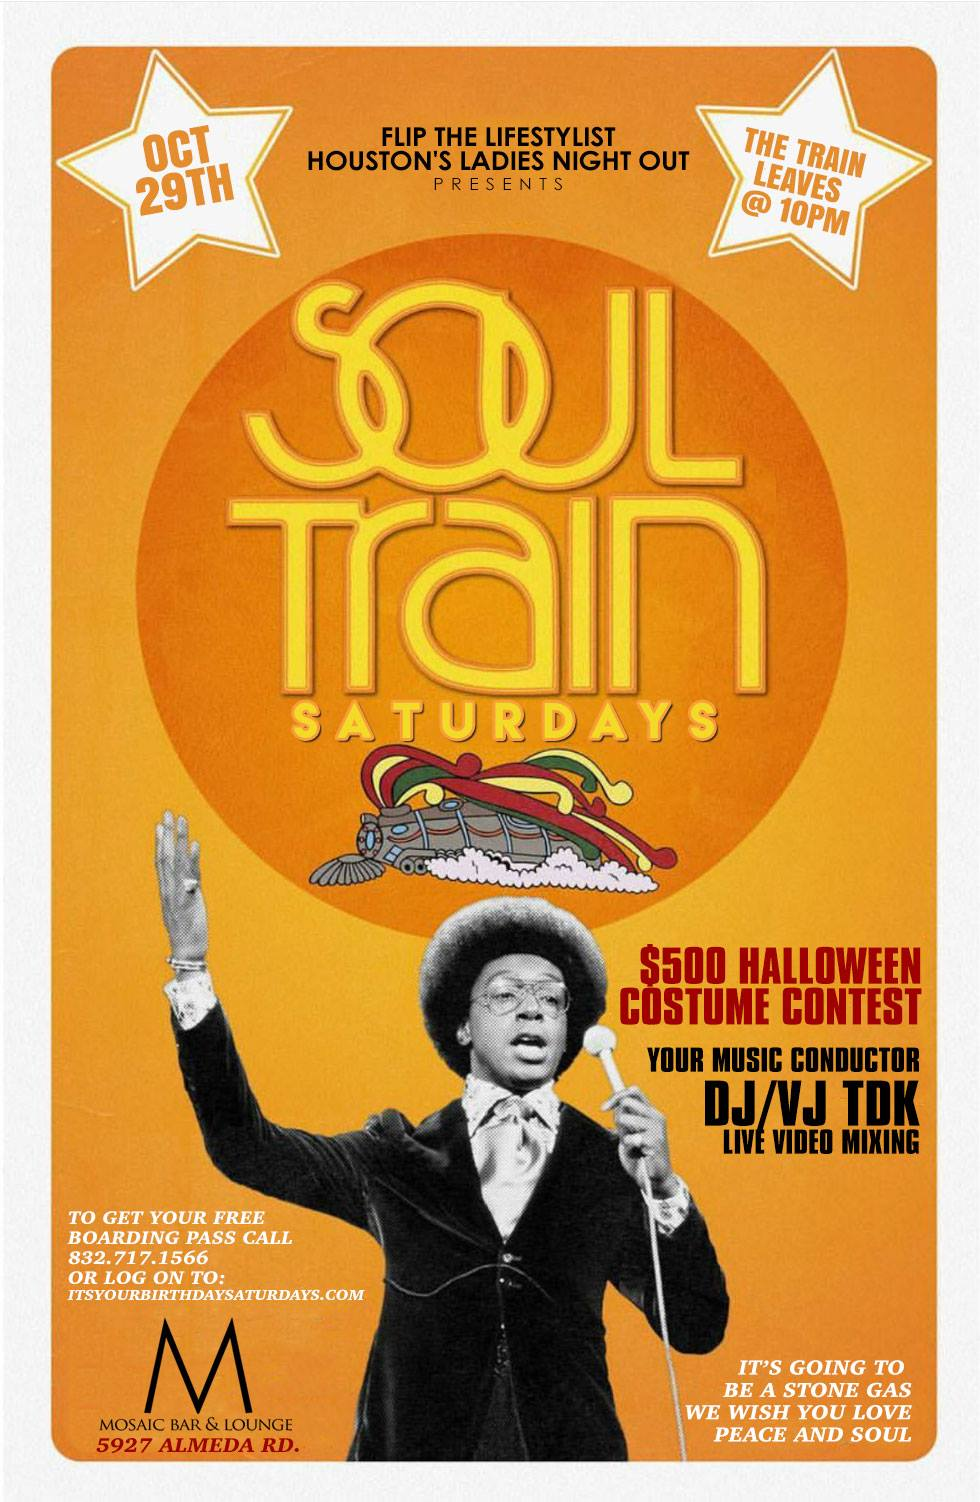 SOUL TRAIN SATURDAYS HALLOWEEN COSTUME PARTY OCTOBER 29TH Tickets ...